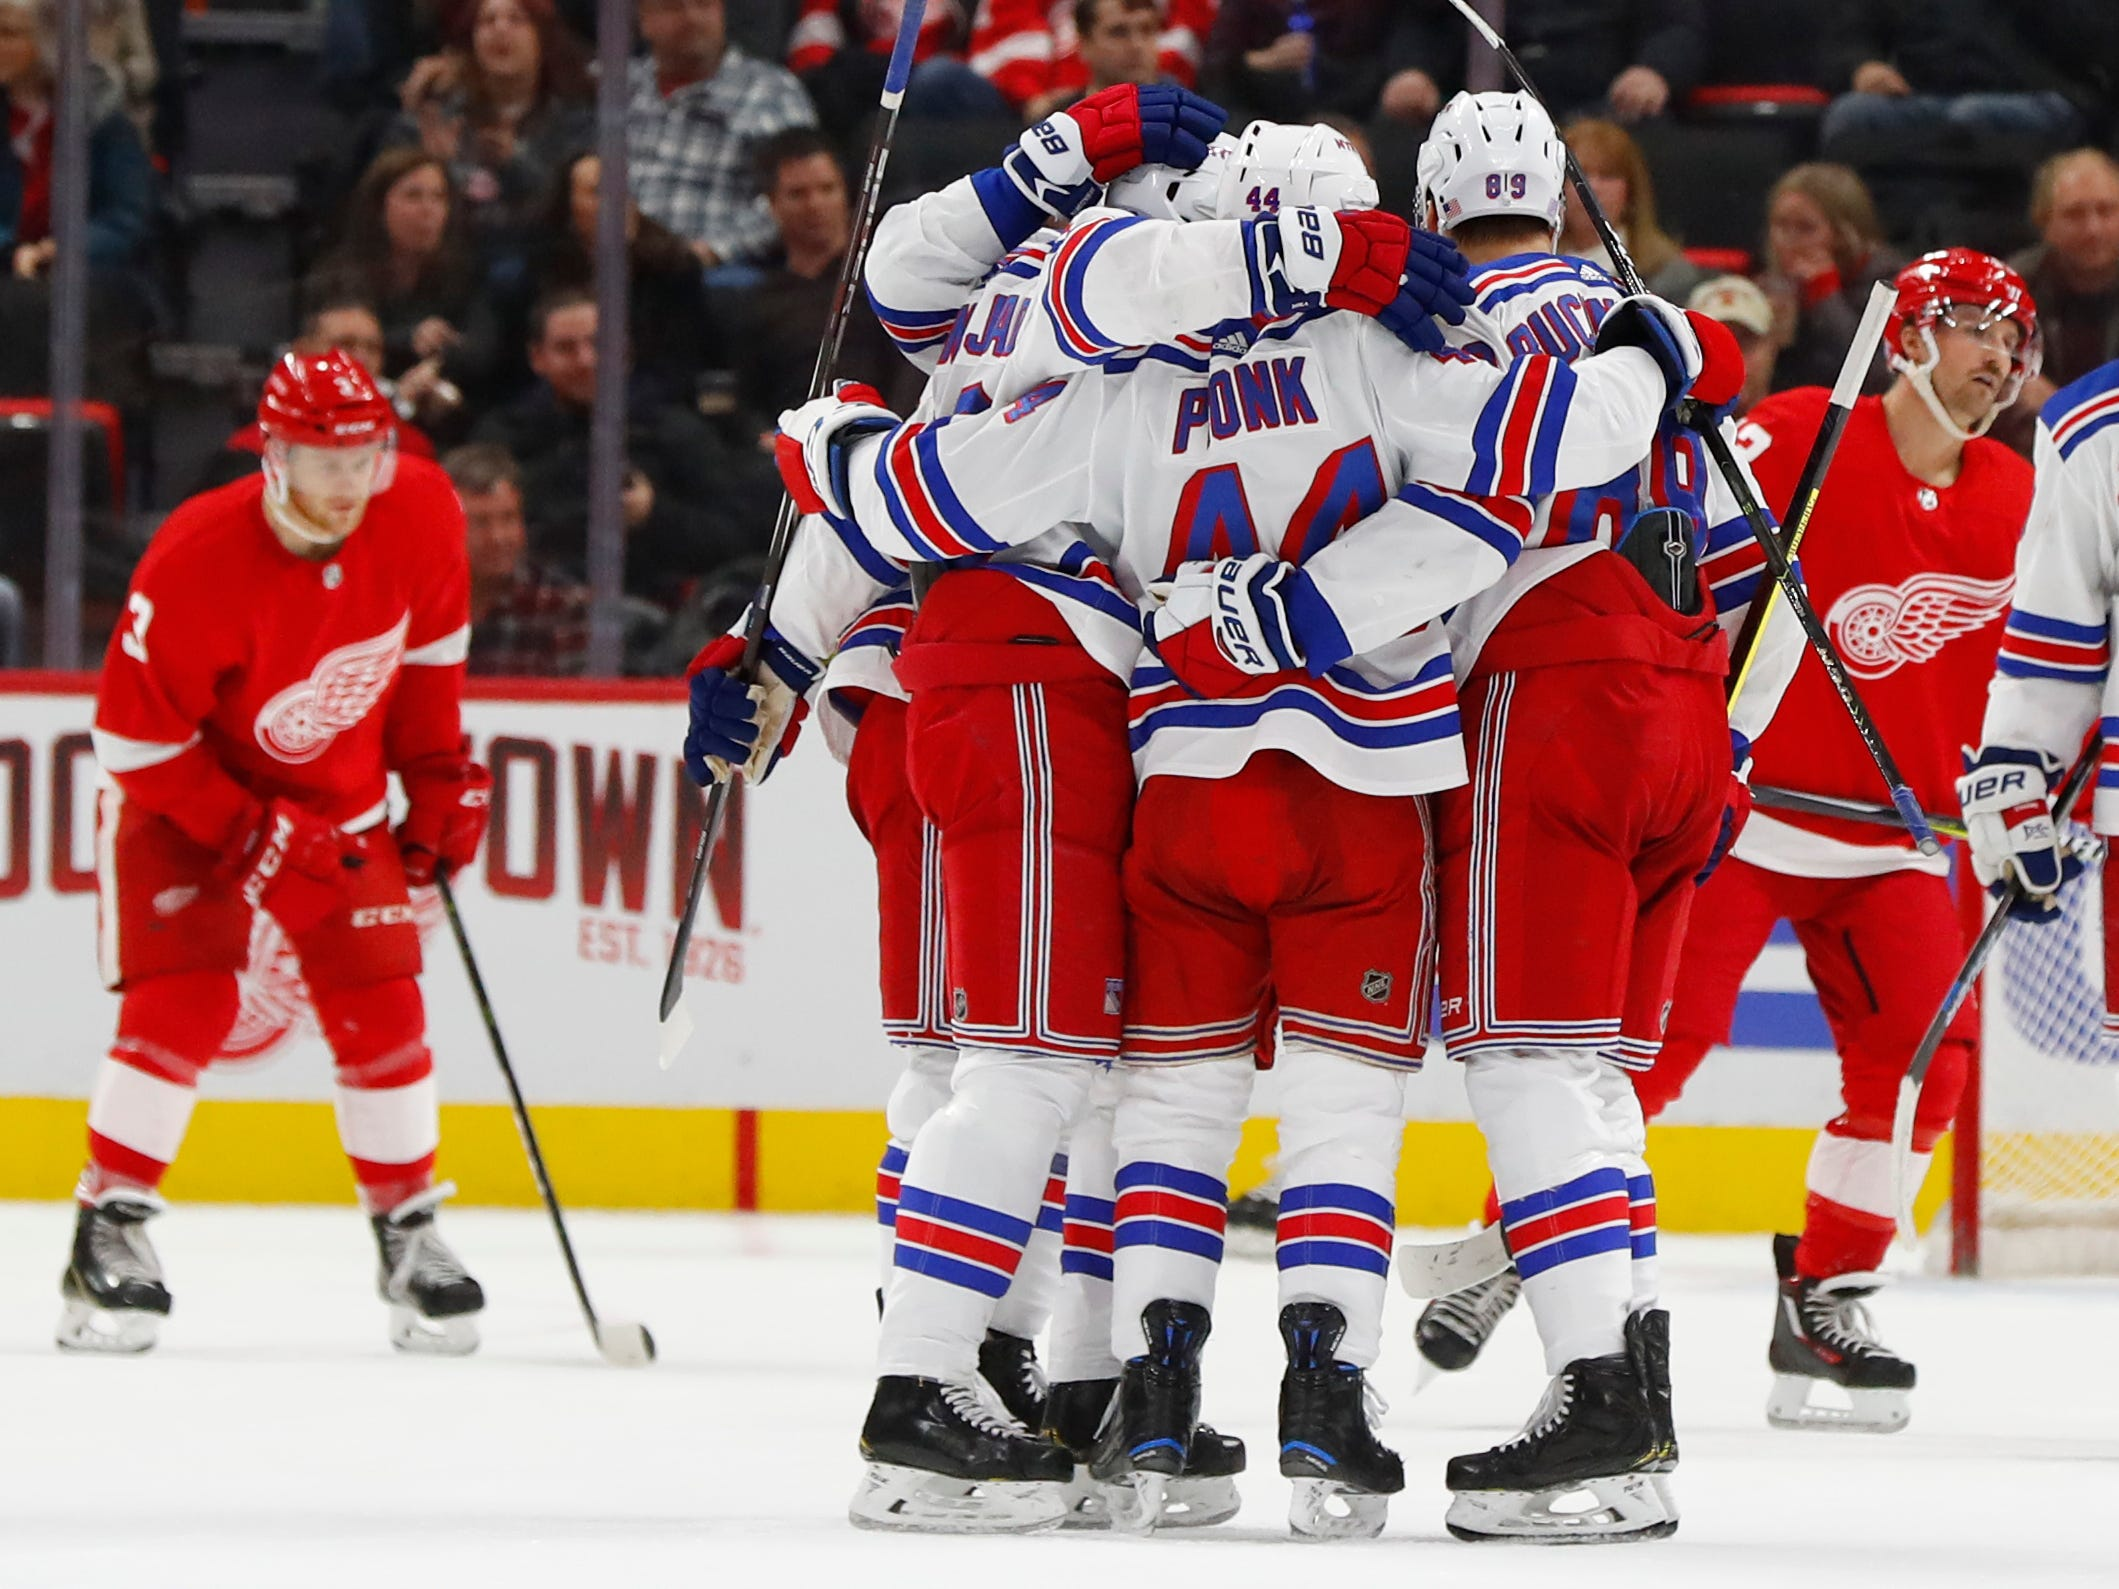 New York Rangers' Neal Pionk (44) celebrates his goal against the Detroit Red Wings in the second period of an NHL hockey game in Detroit, Friday, Nov. 9, 2018.